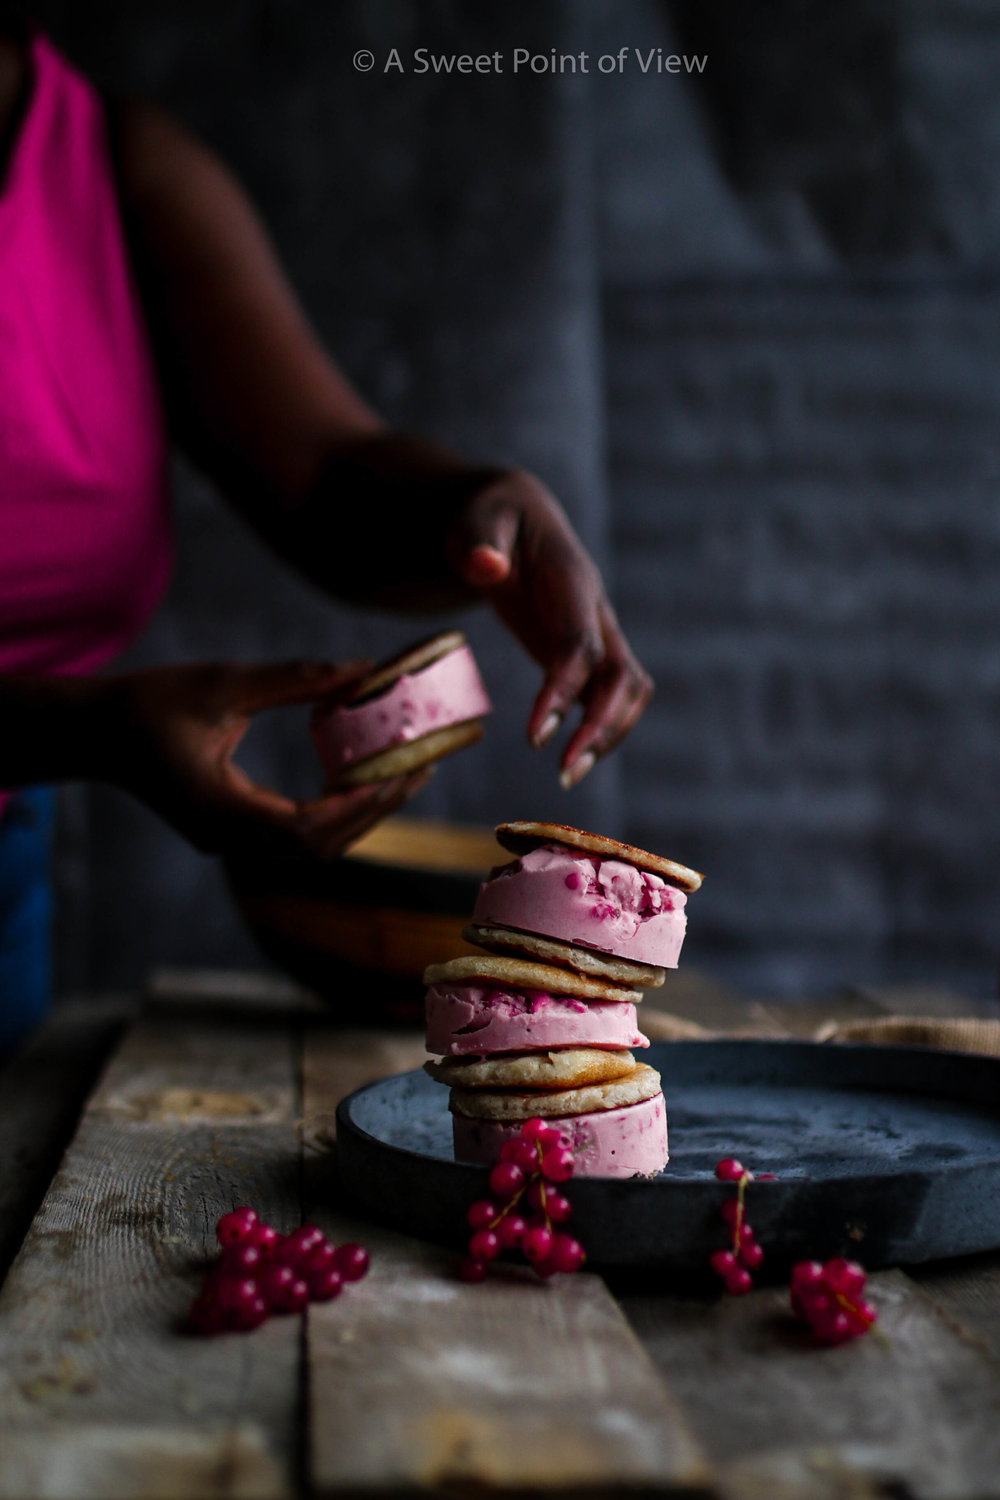 Copy of Hausa-Rice-Cake-Red-Current-Ice-Cream-Sandwiches-7-of-1.jpg